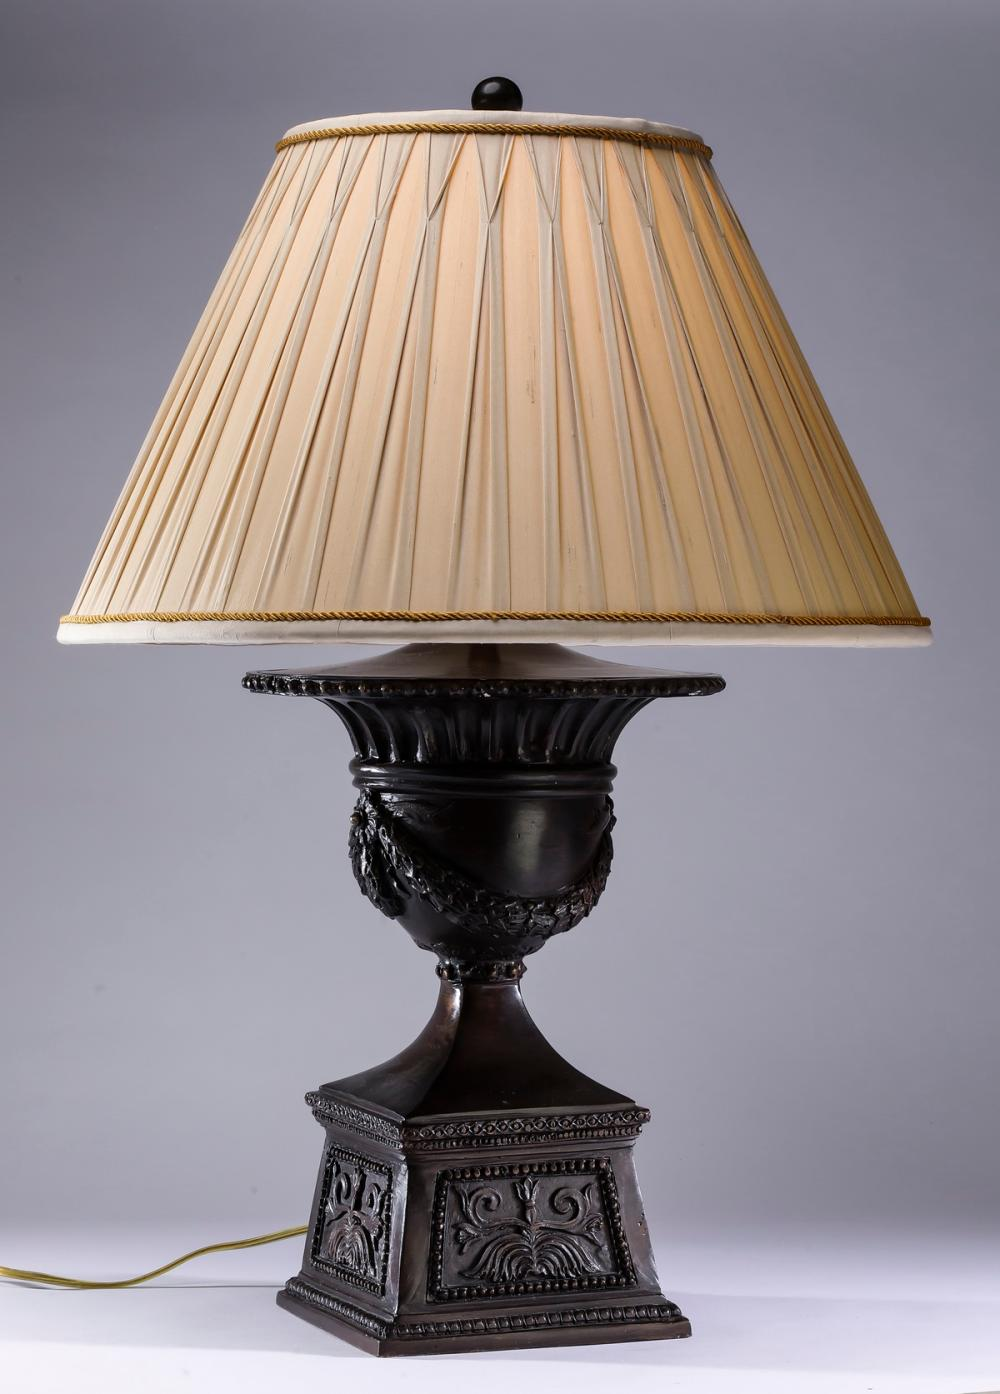 Maitland-Smith Neoclassical style metal table lamp